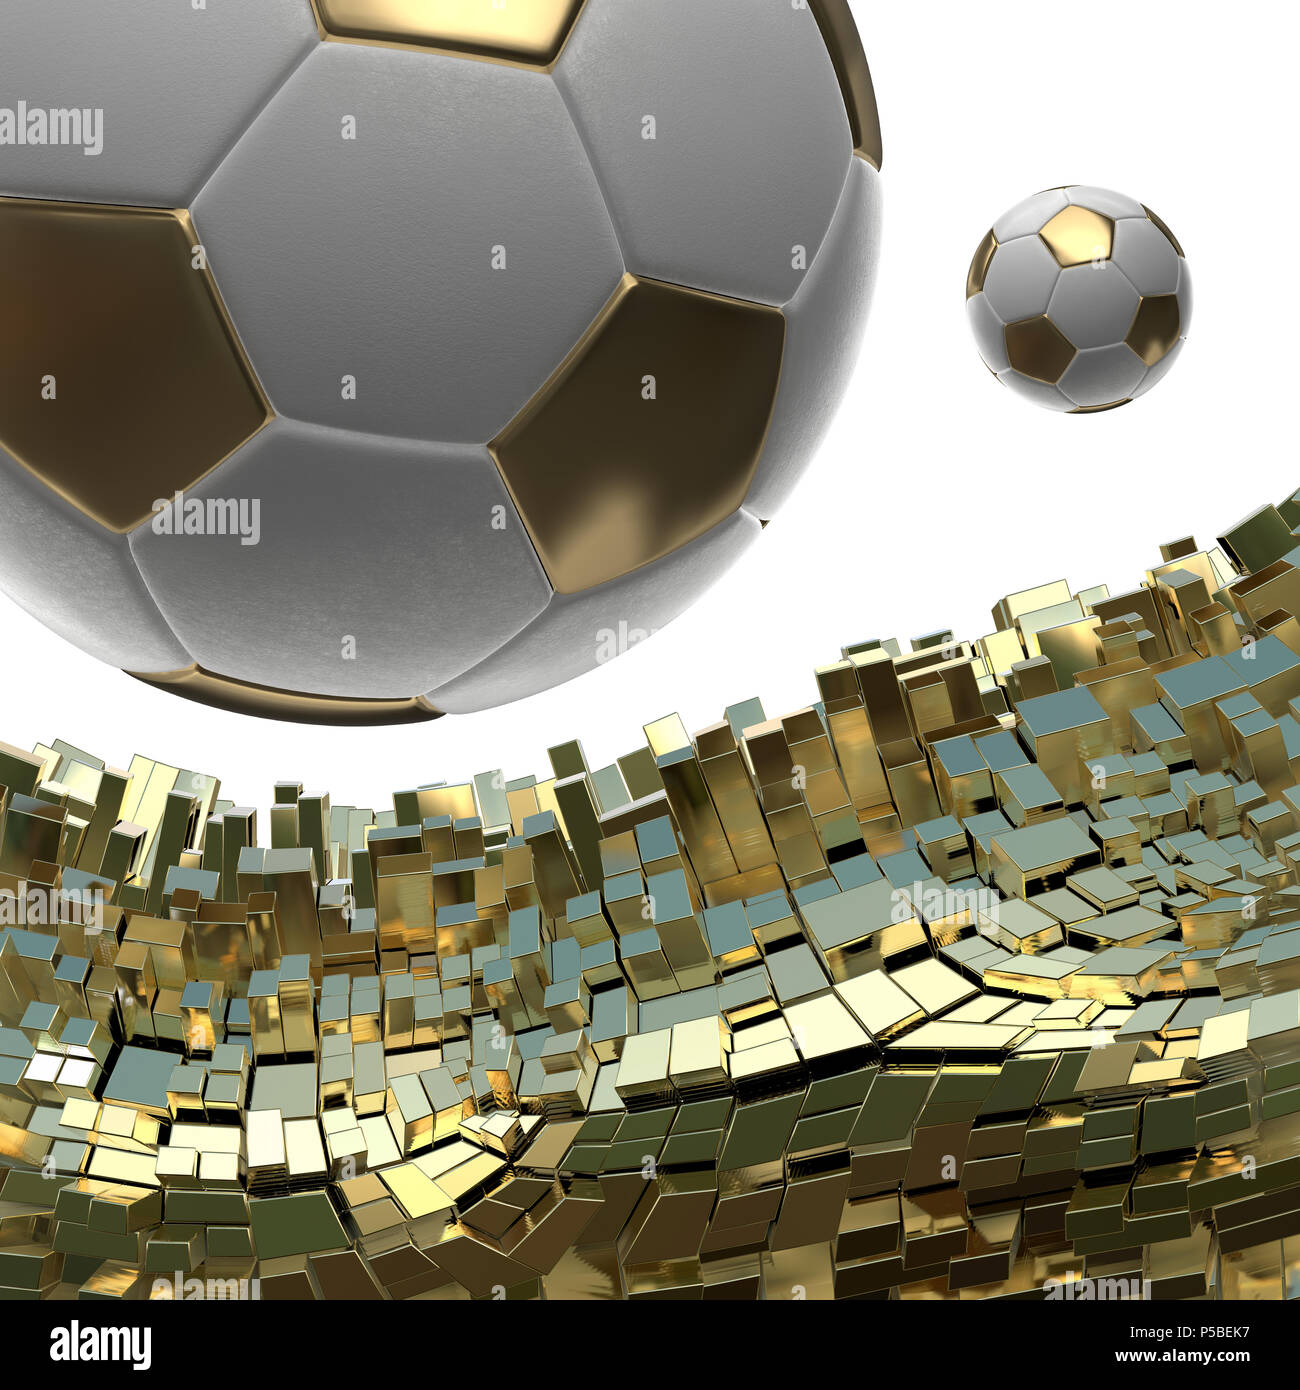 5a3e37b7c Soccer-balls isolated on golden architectural background 3d illustration